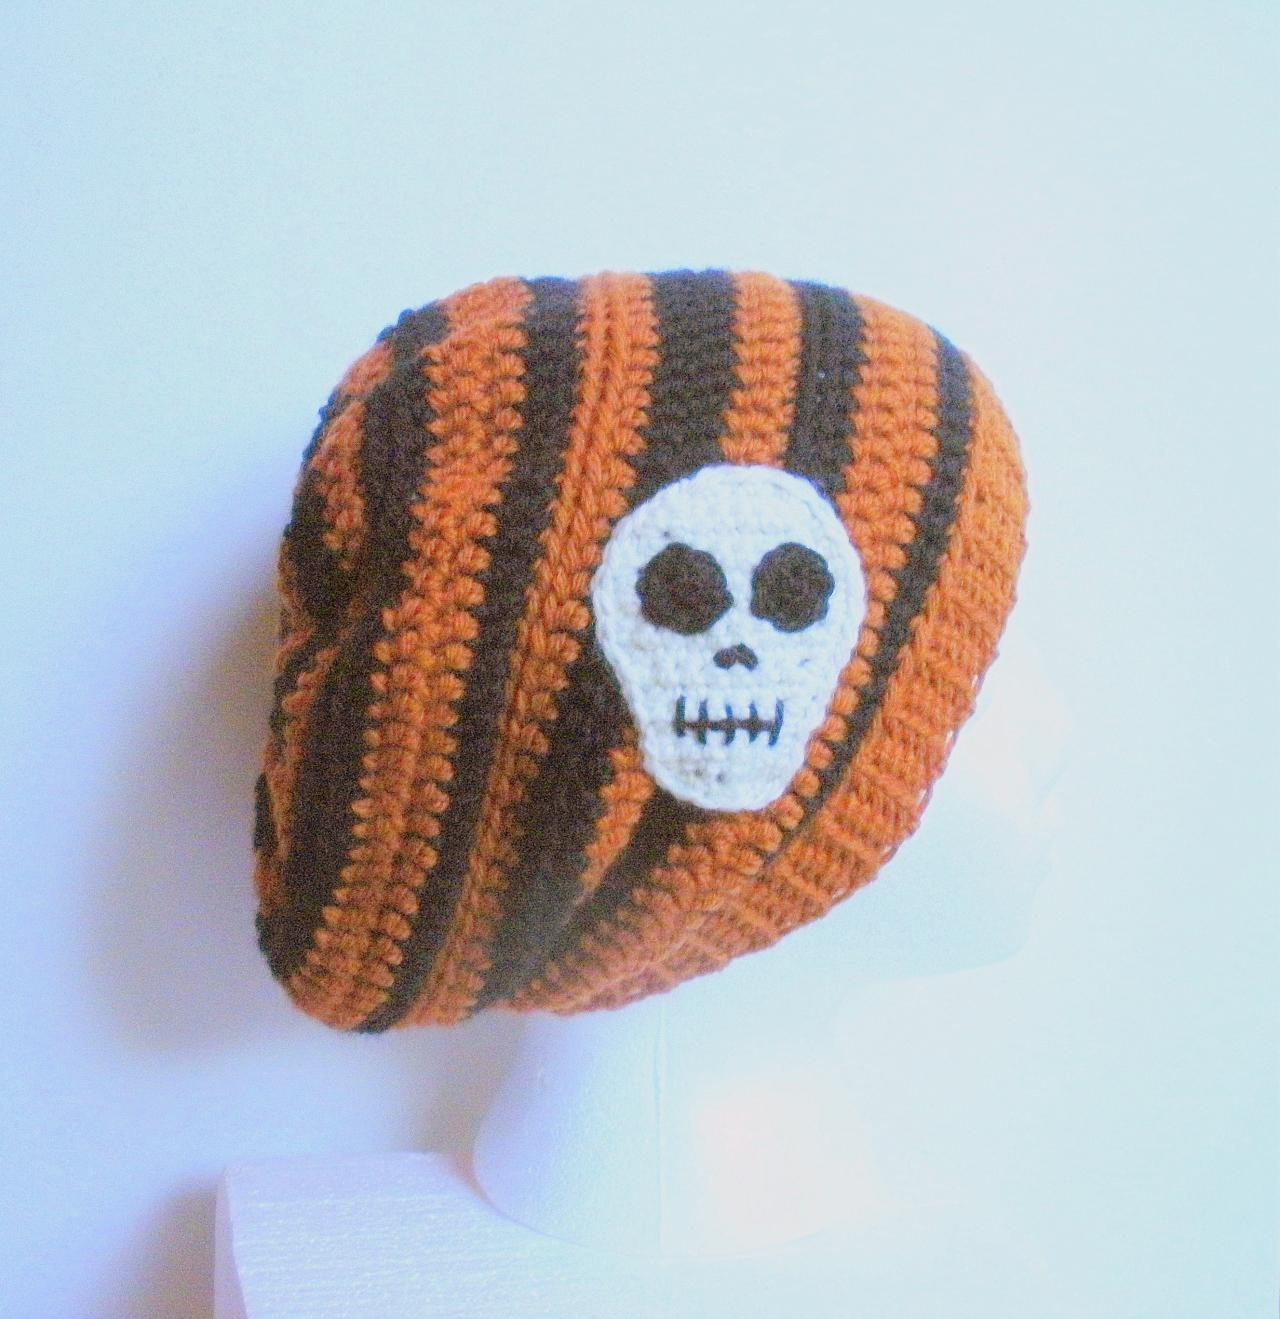 Skull Slouch in Pumpkin Orange and Black Stripes, striped crochet slouchy hat with skull applique, Halloween slouch ready to ship.